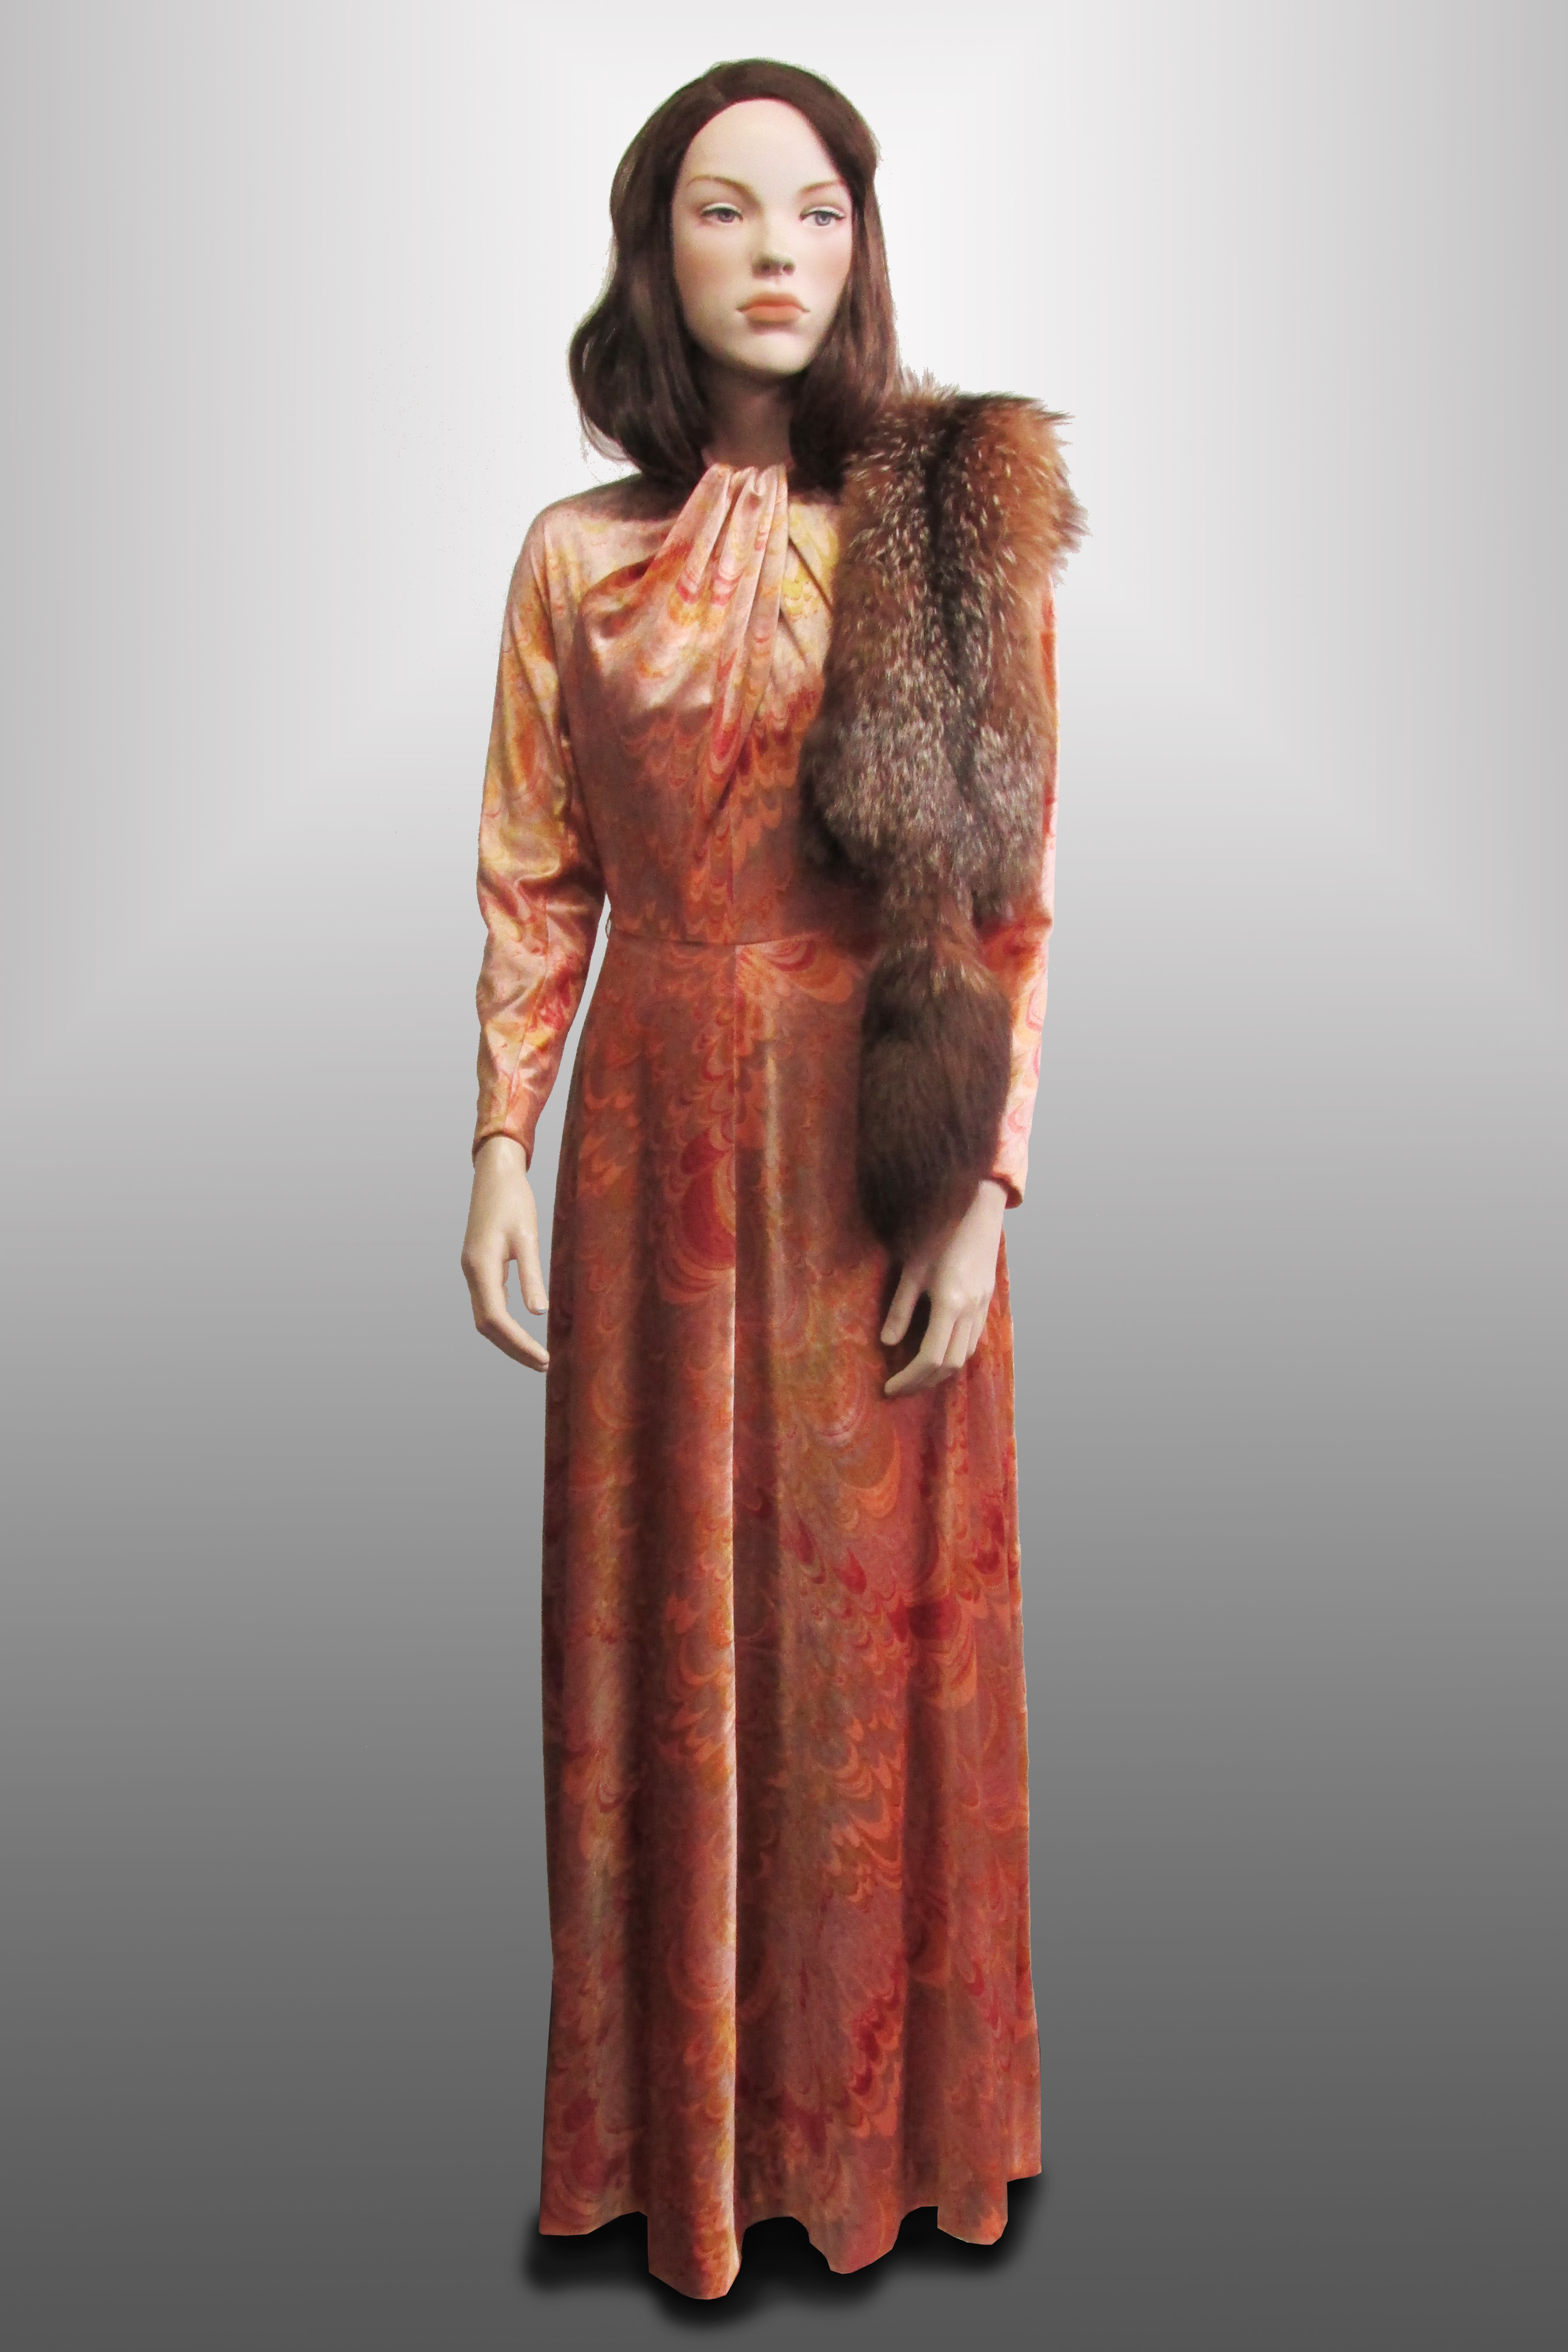 Evening Gown Pink/Peach Velvet with High Cross Neck 1940s